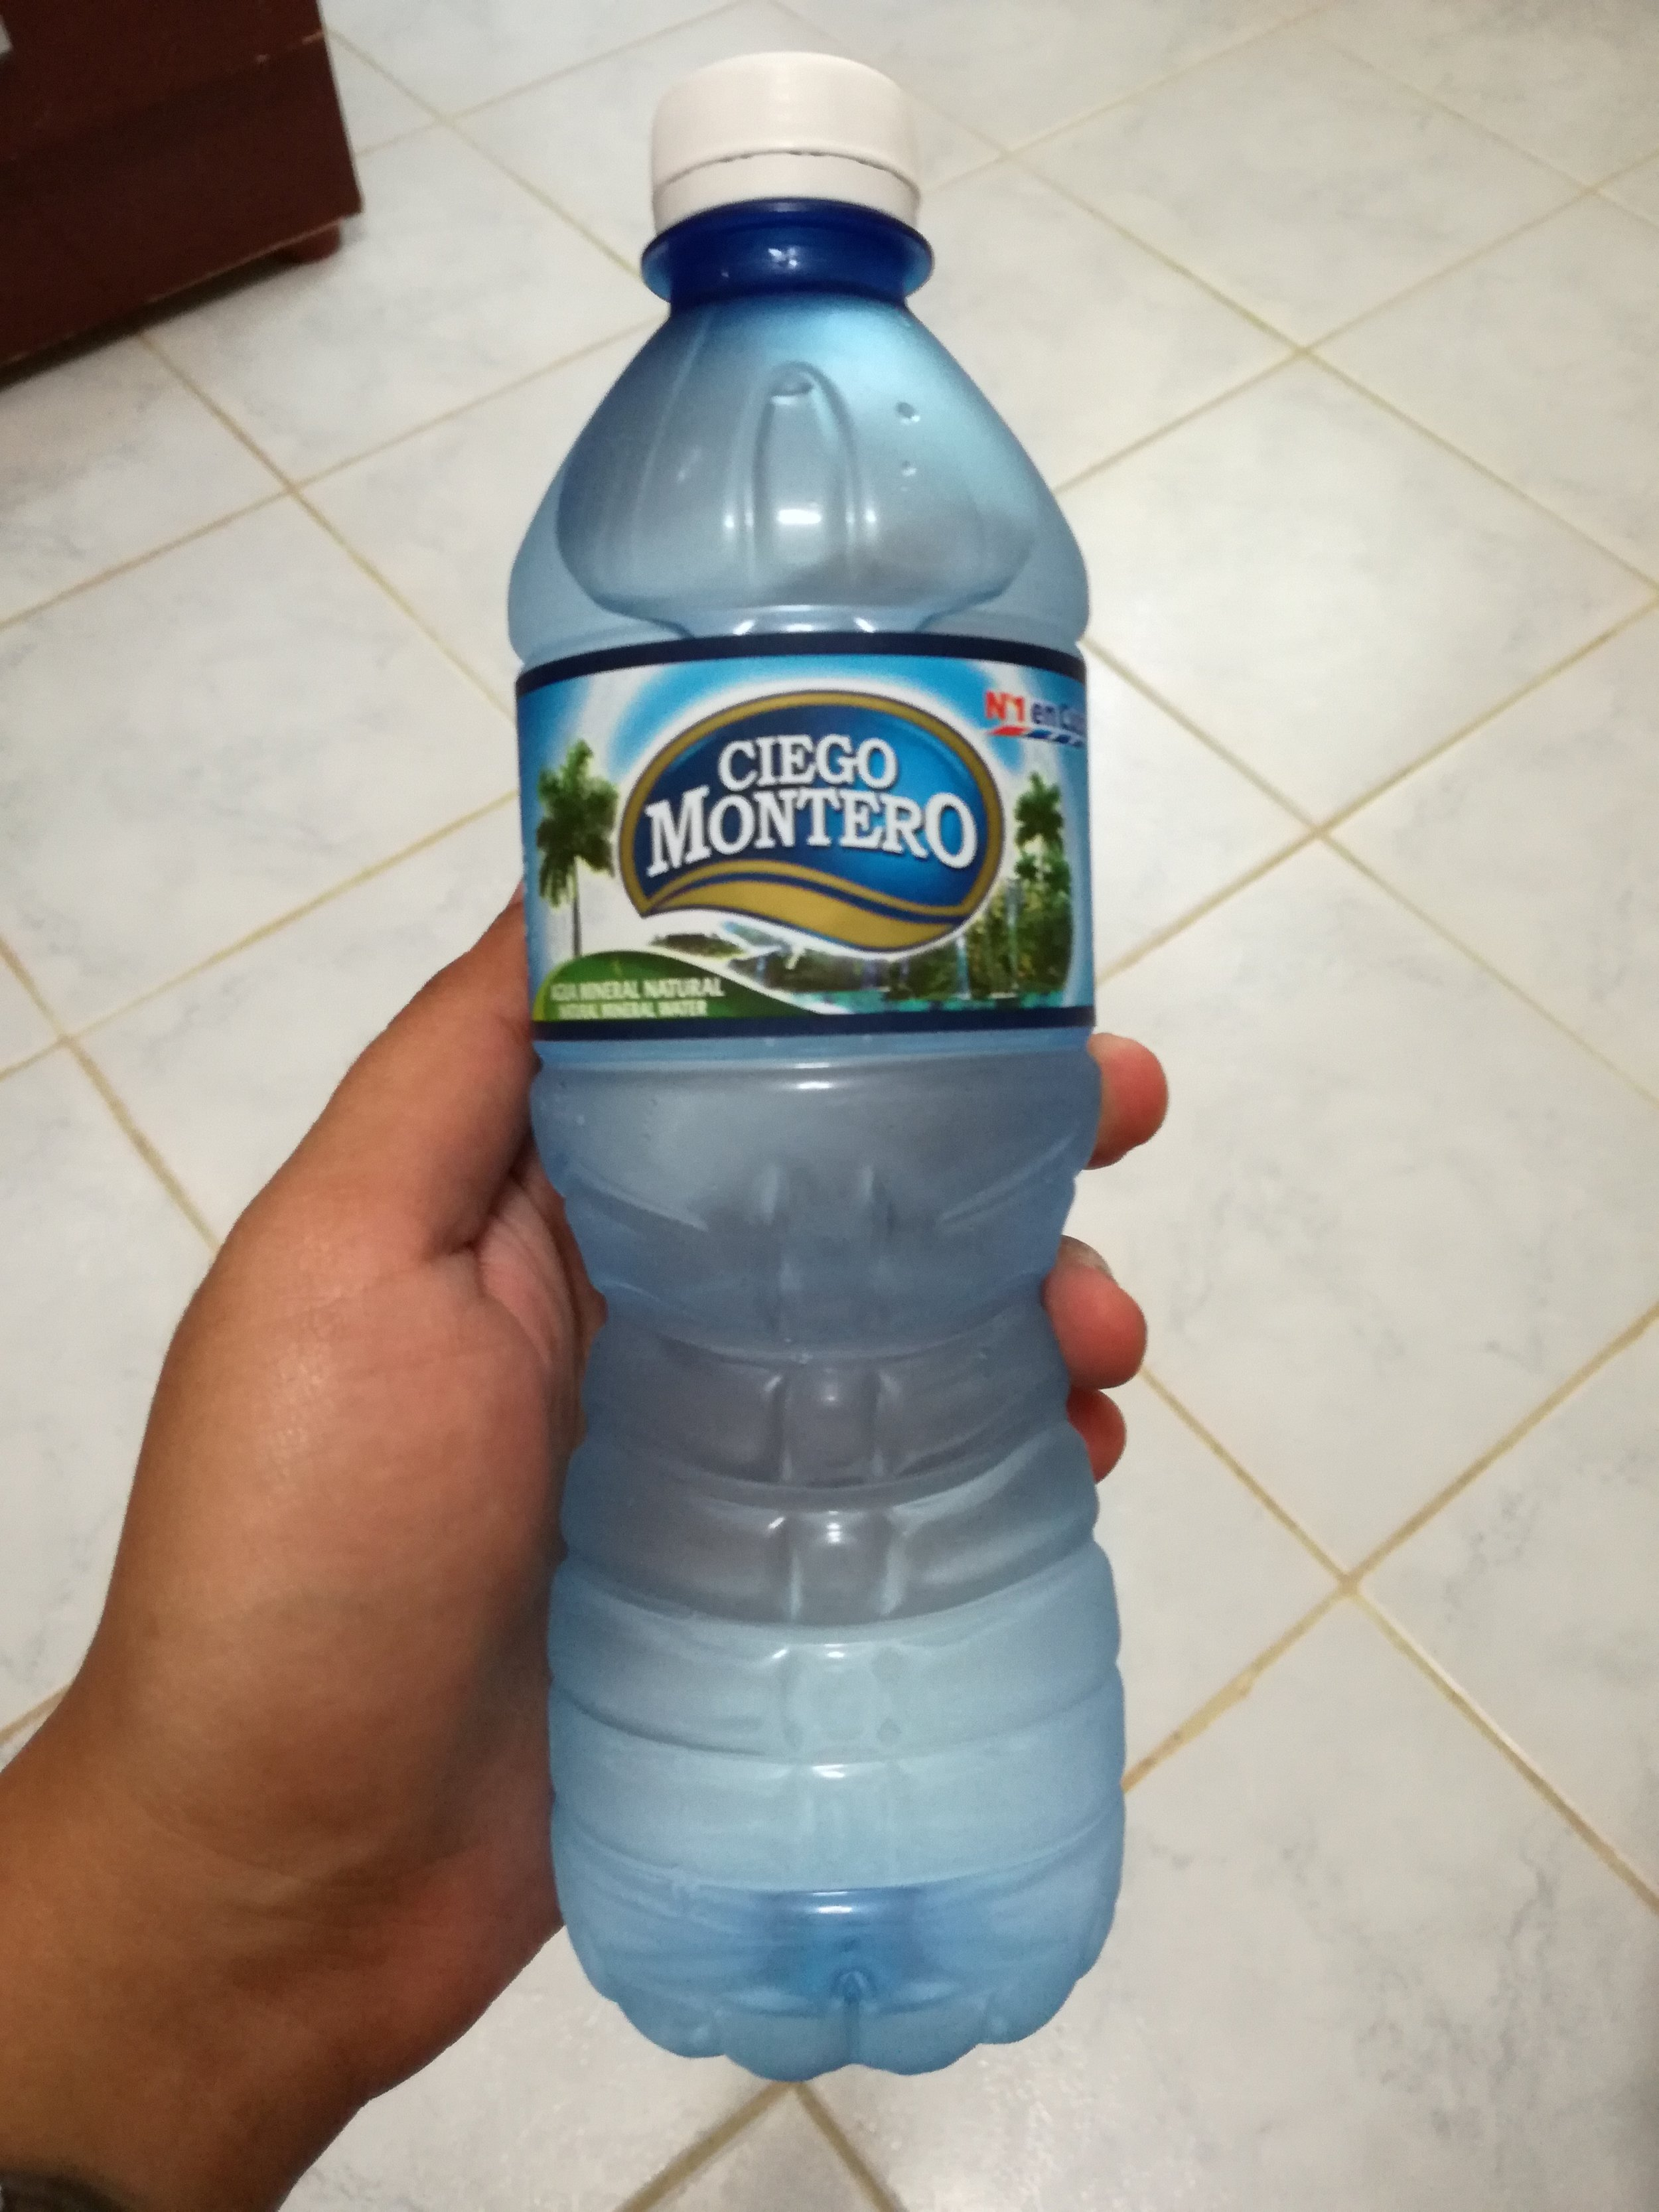 This is the only brand of water you'll see, which is government owned.